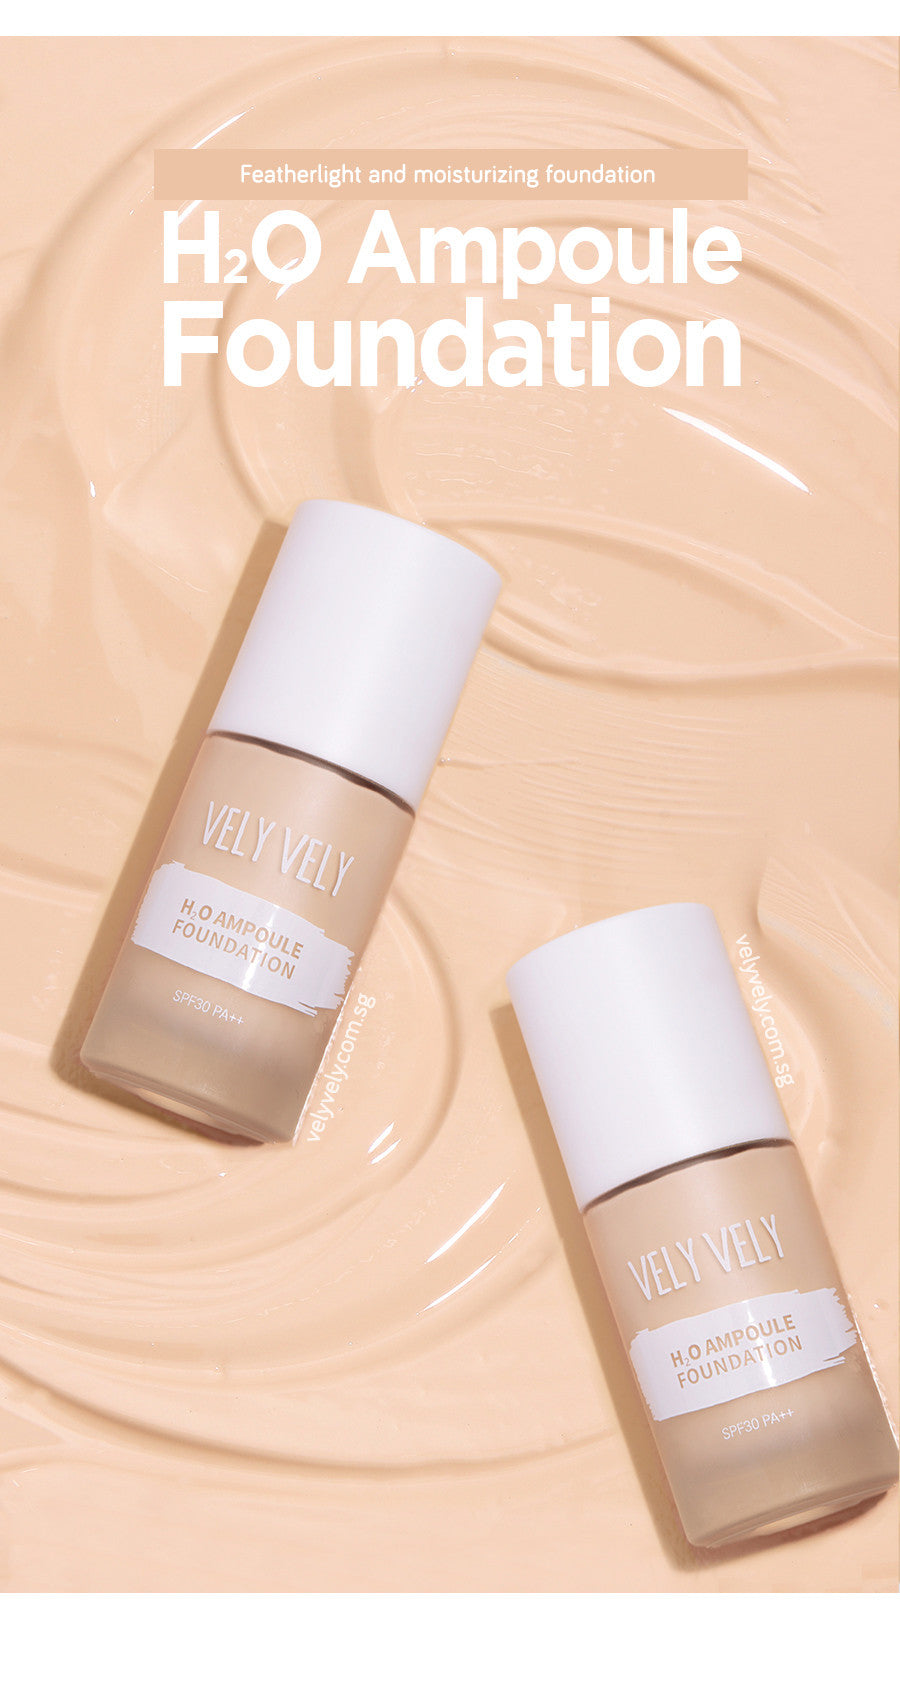 Vely Vely All New H2O Ampoule Foundation!